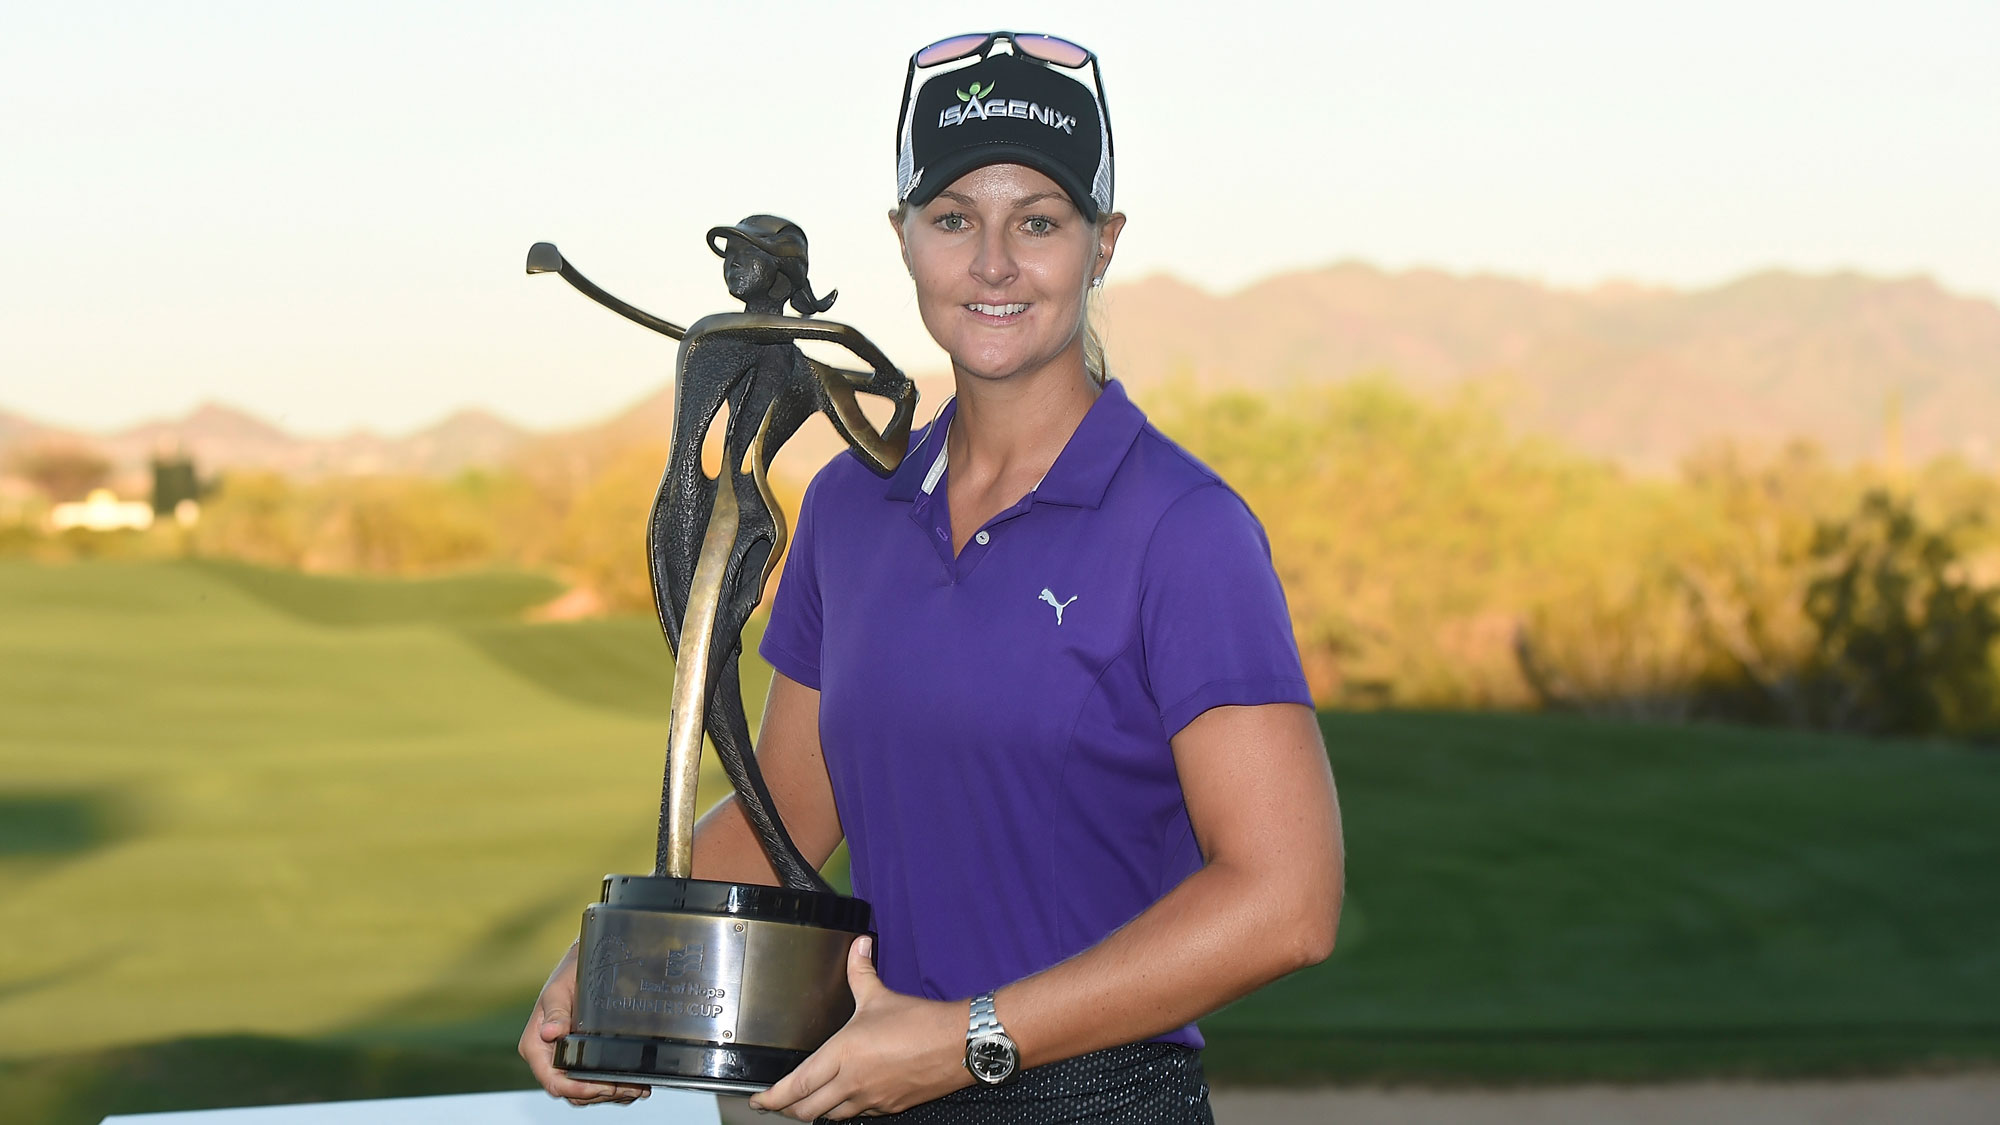 lpga.com - Nordqvist Picks Up Seventh Win at the Bank of Hope Founders Cup | LPGA